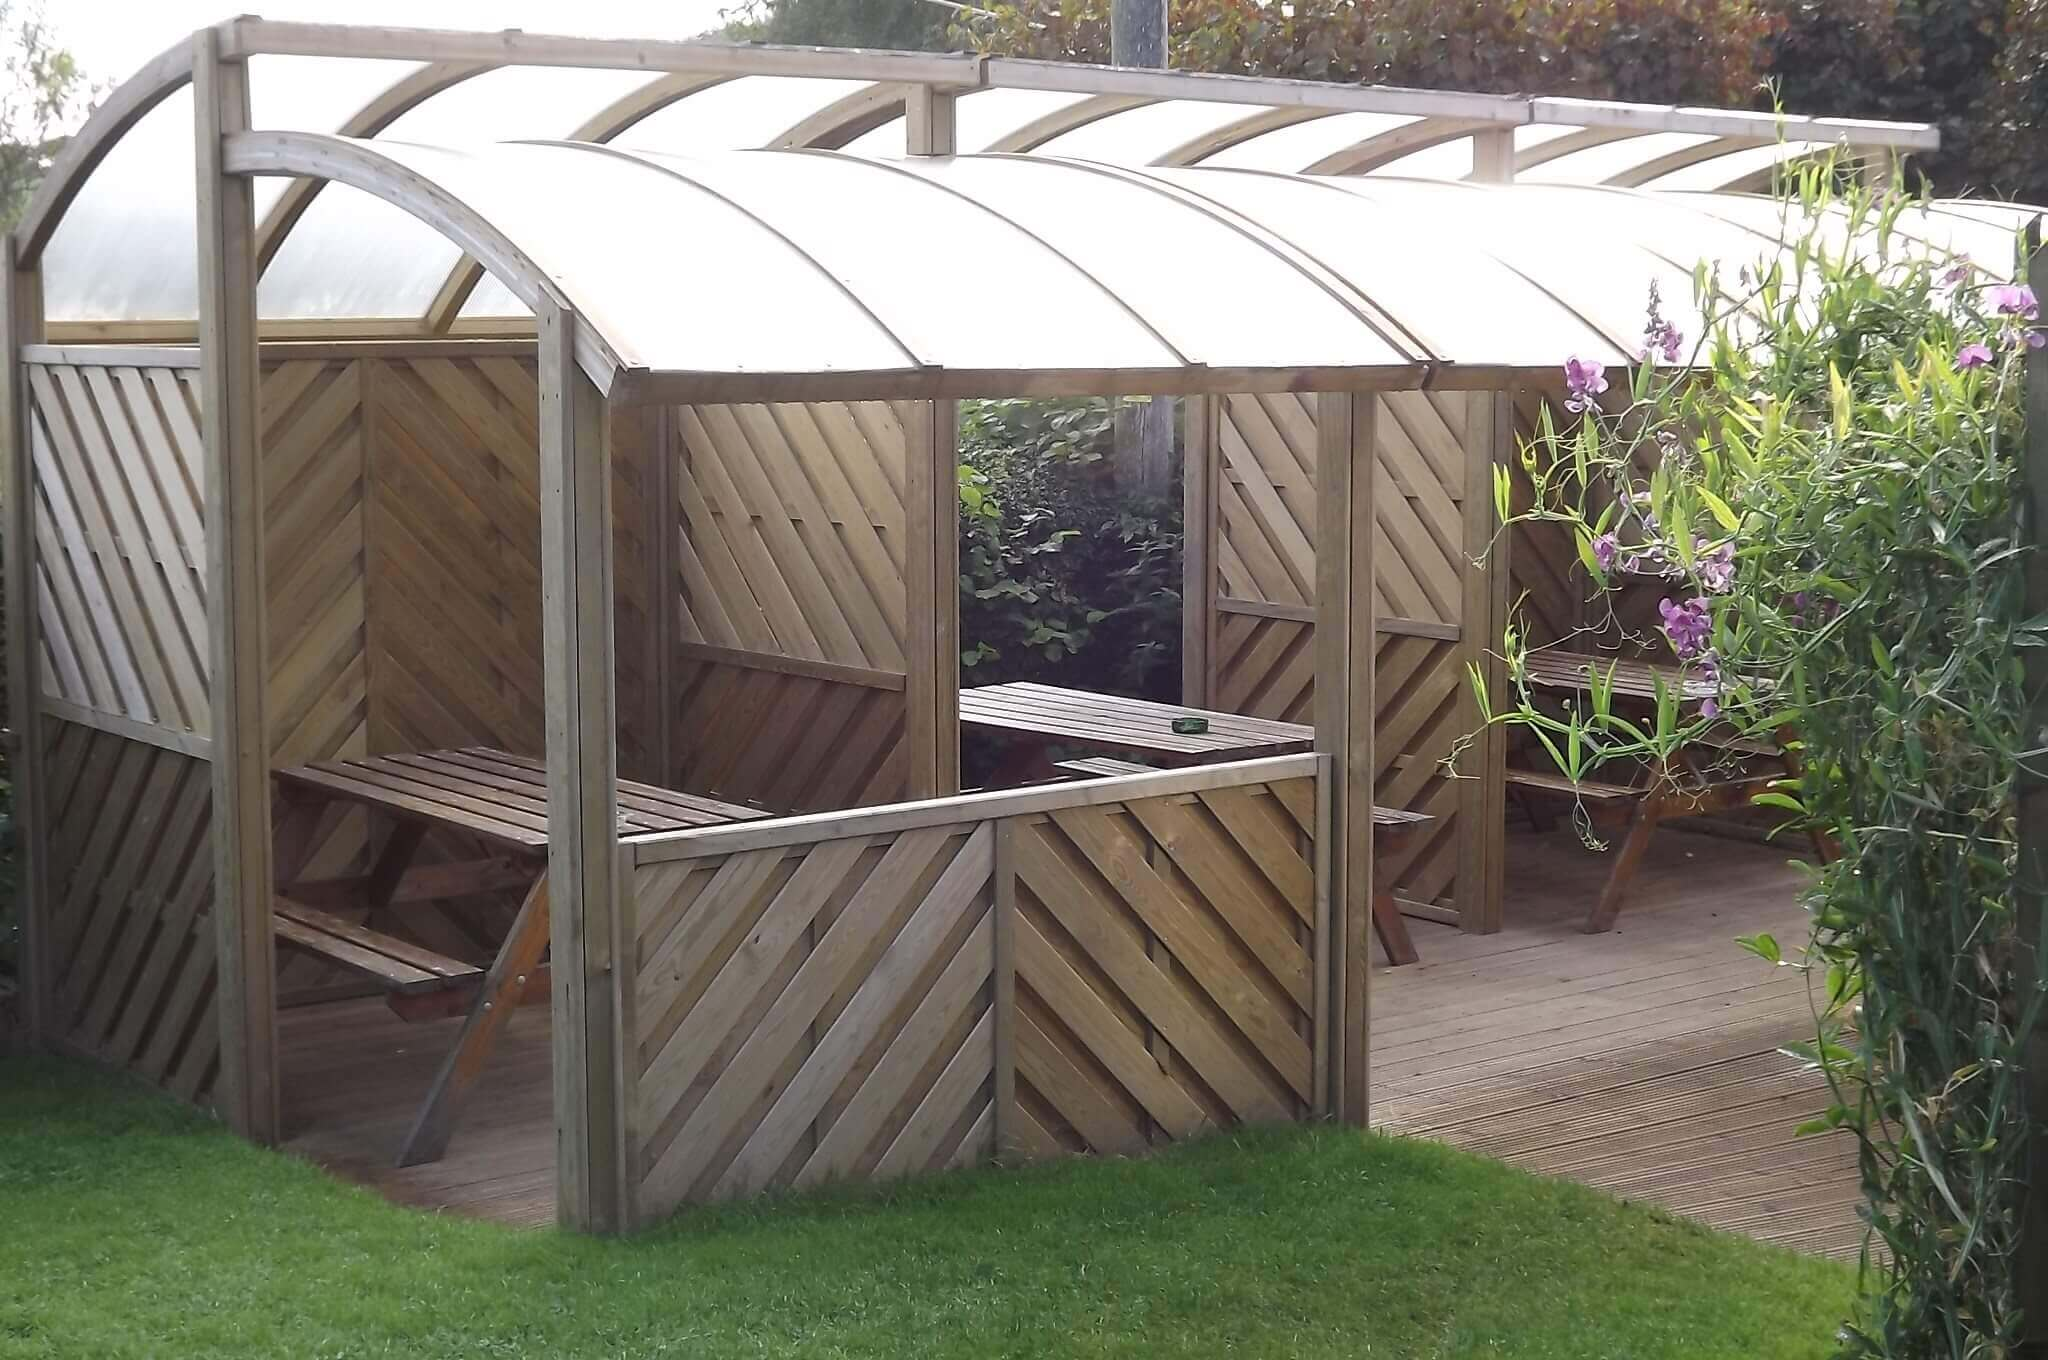 Timber garden Shelters